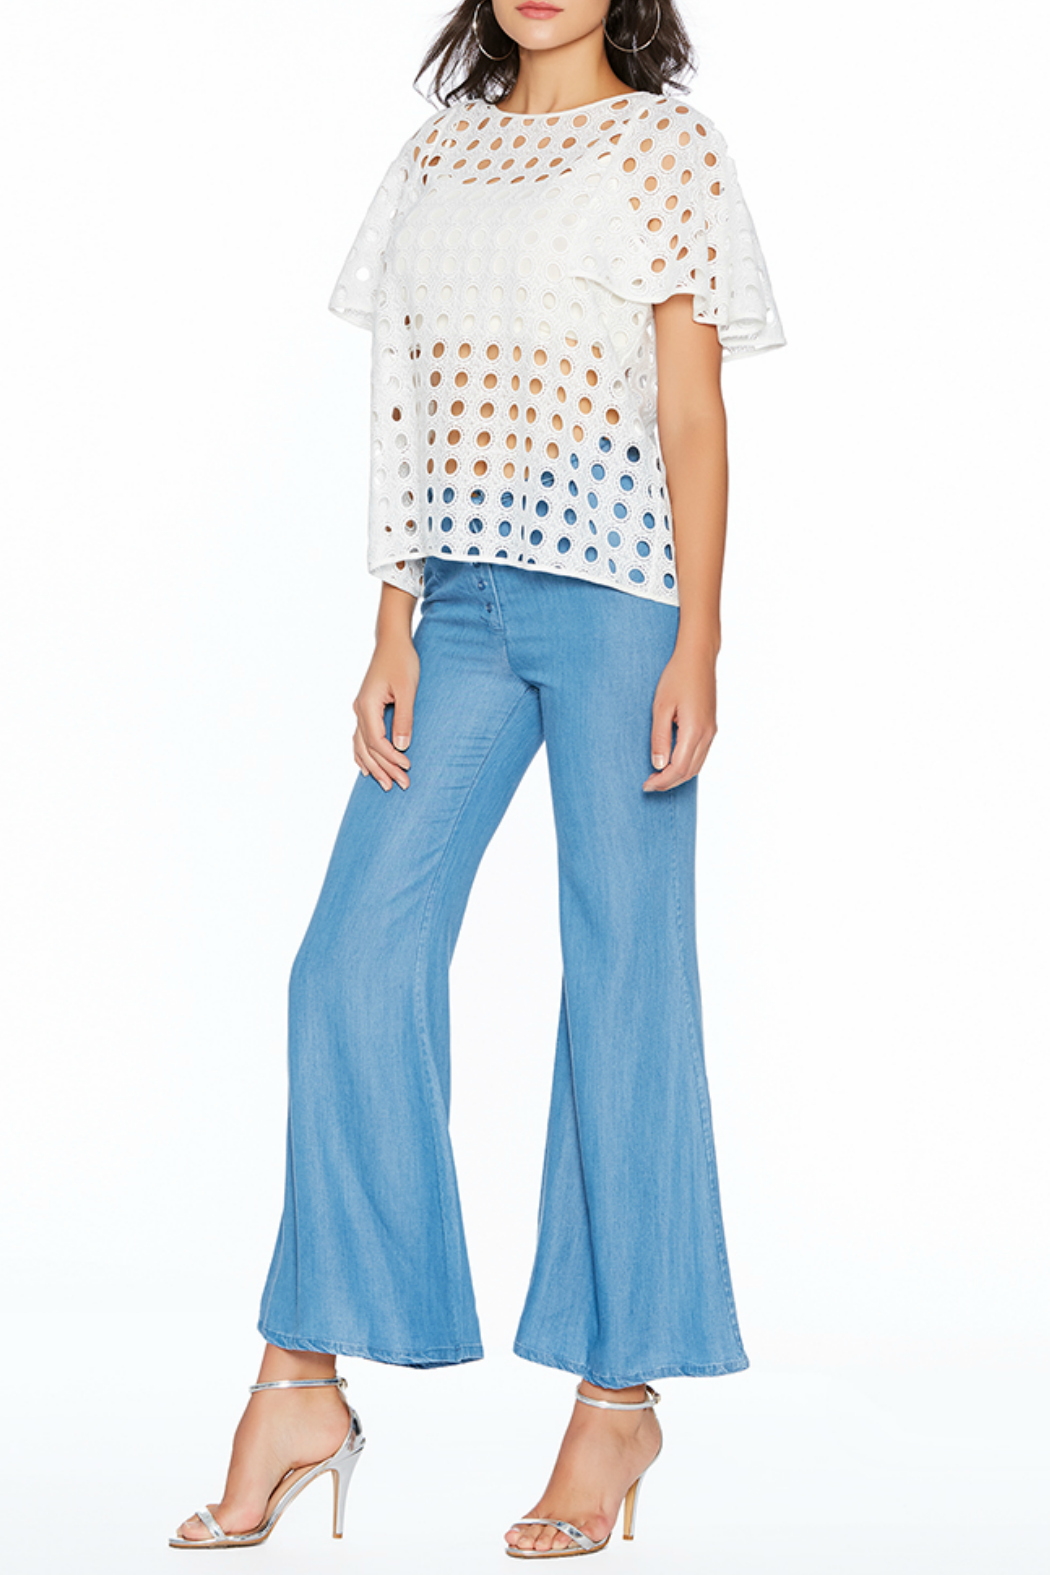 Avantlook Bell-Bottom Tencel Pants - Front Cropped Image